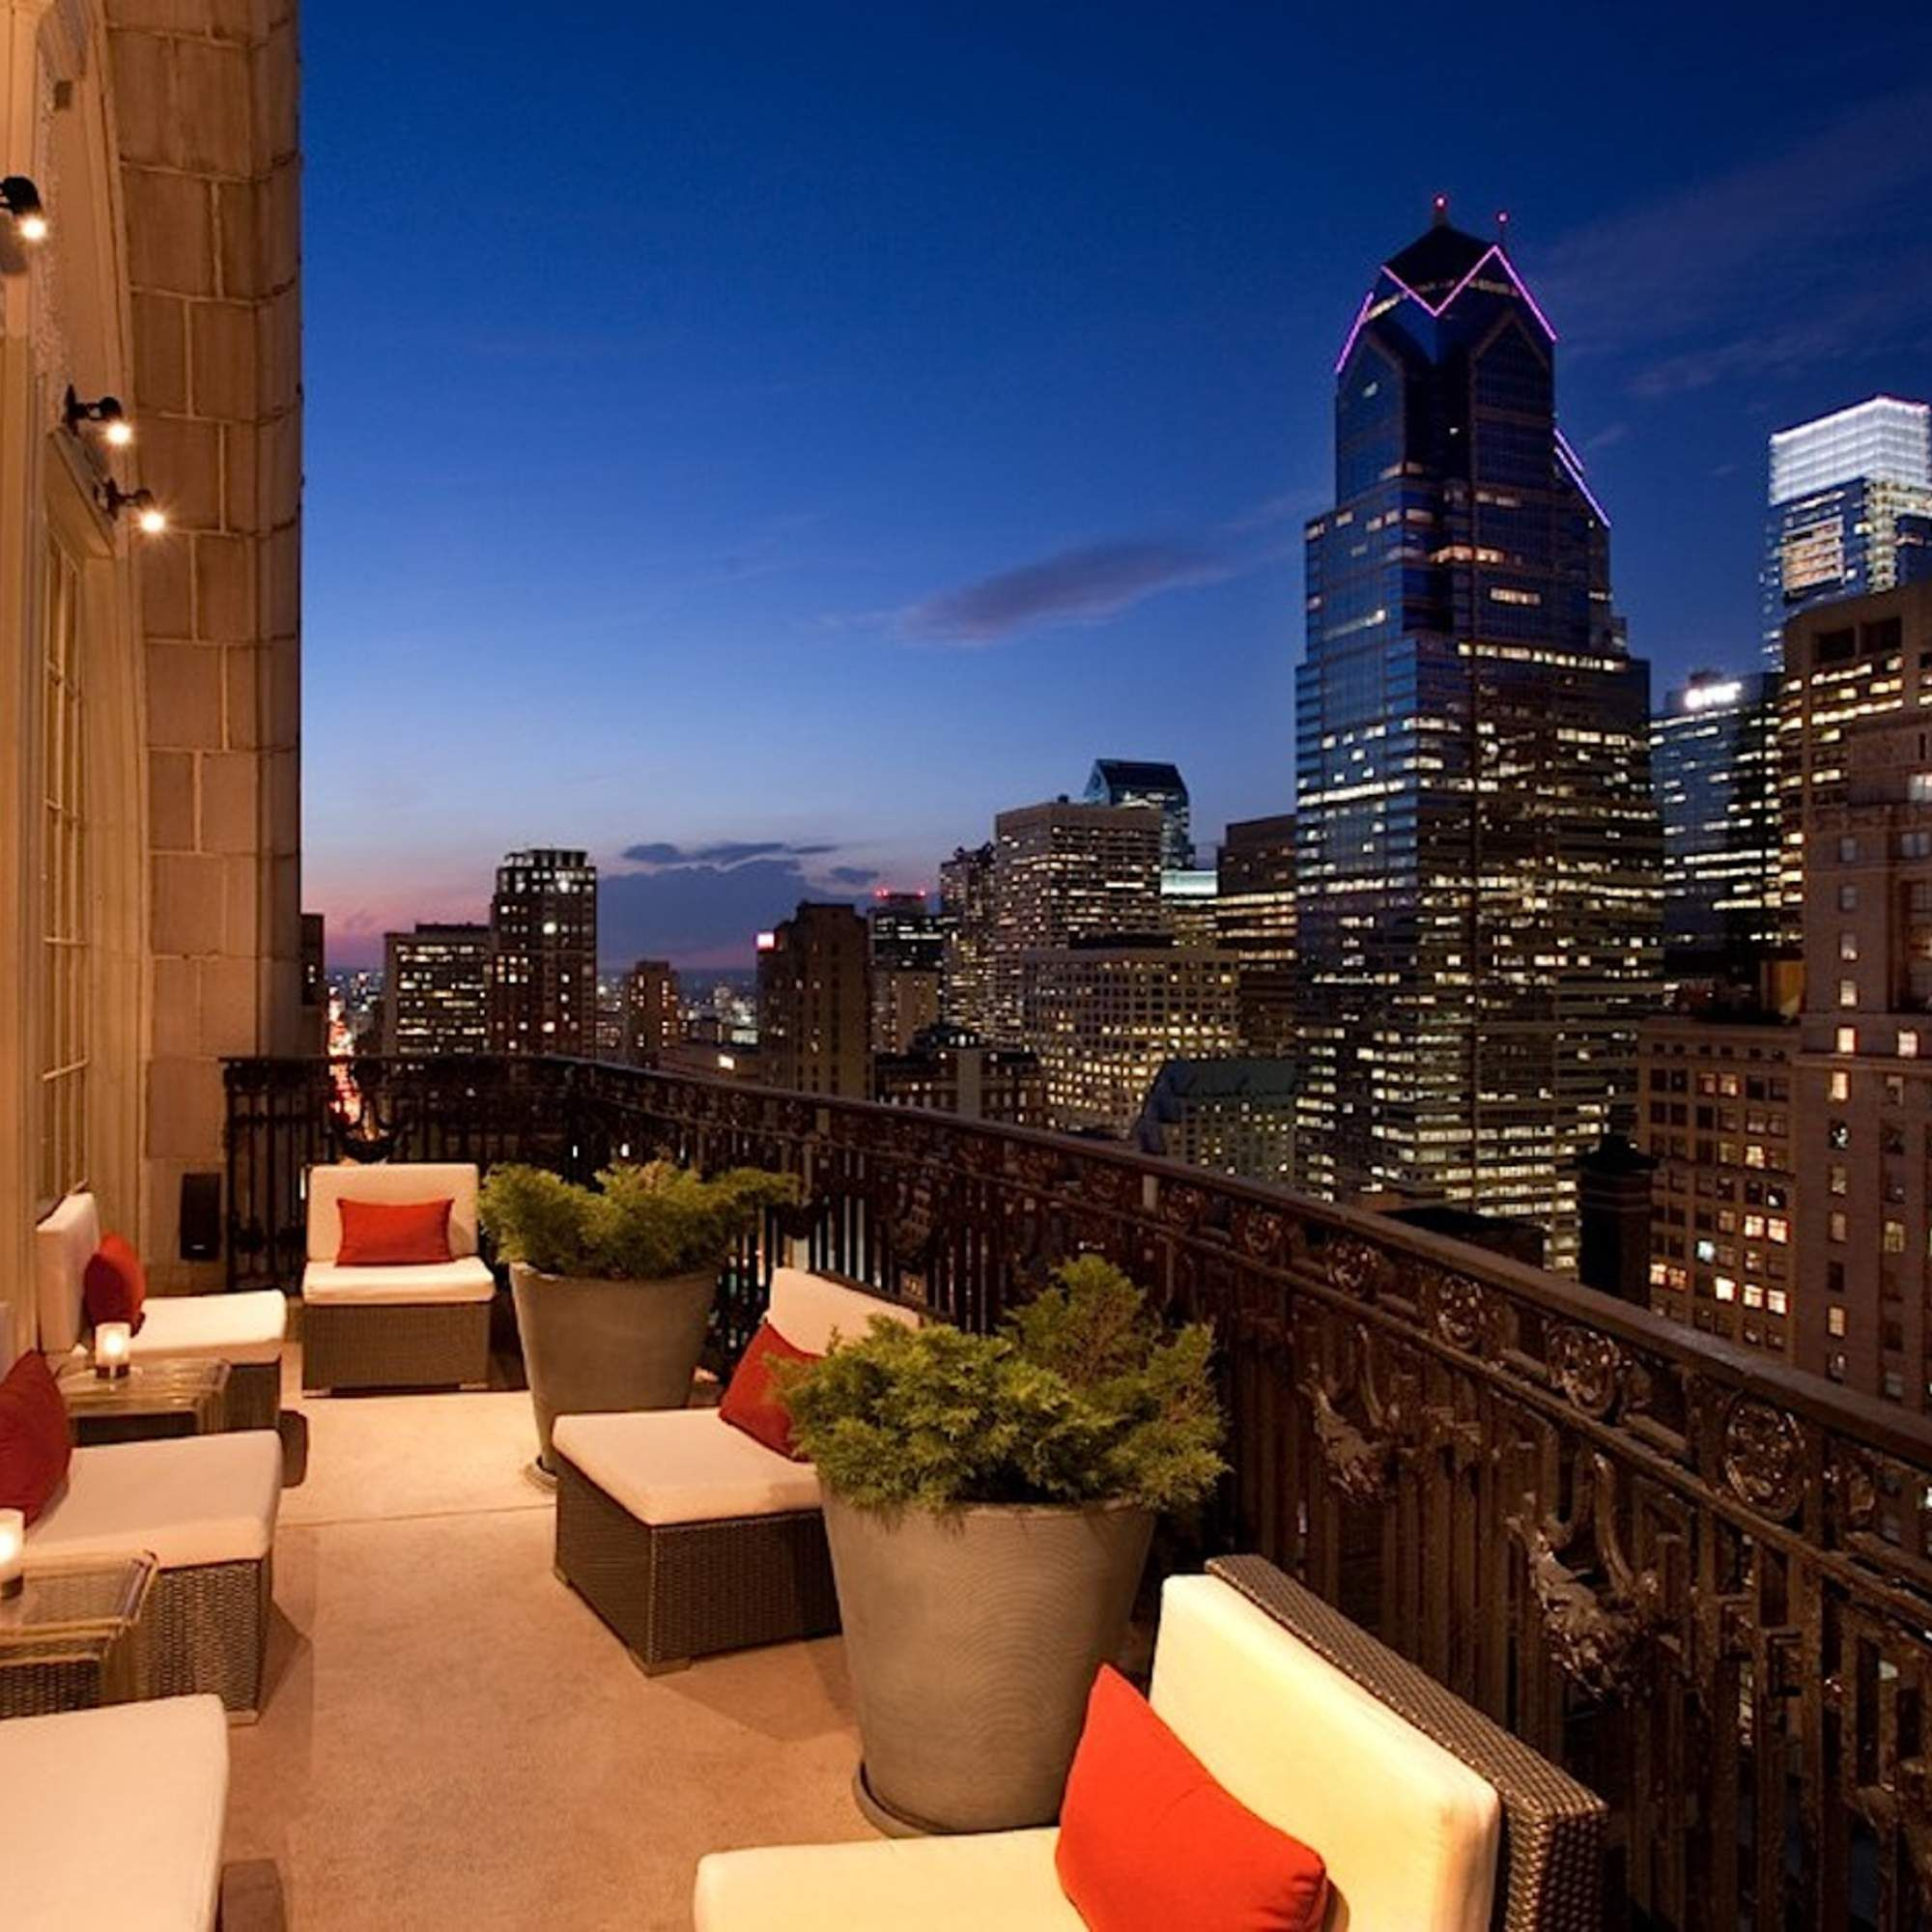 The Best Rooftop Bars in Philly | Bars in philly ...